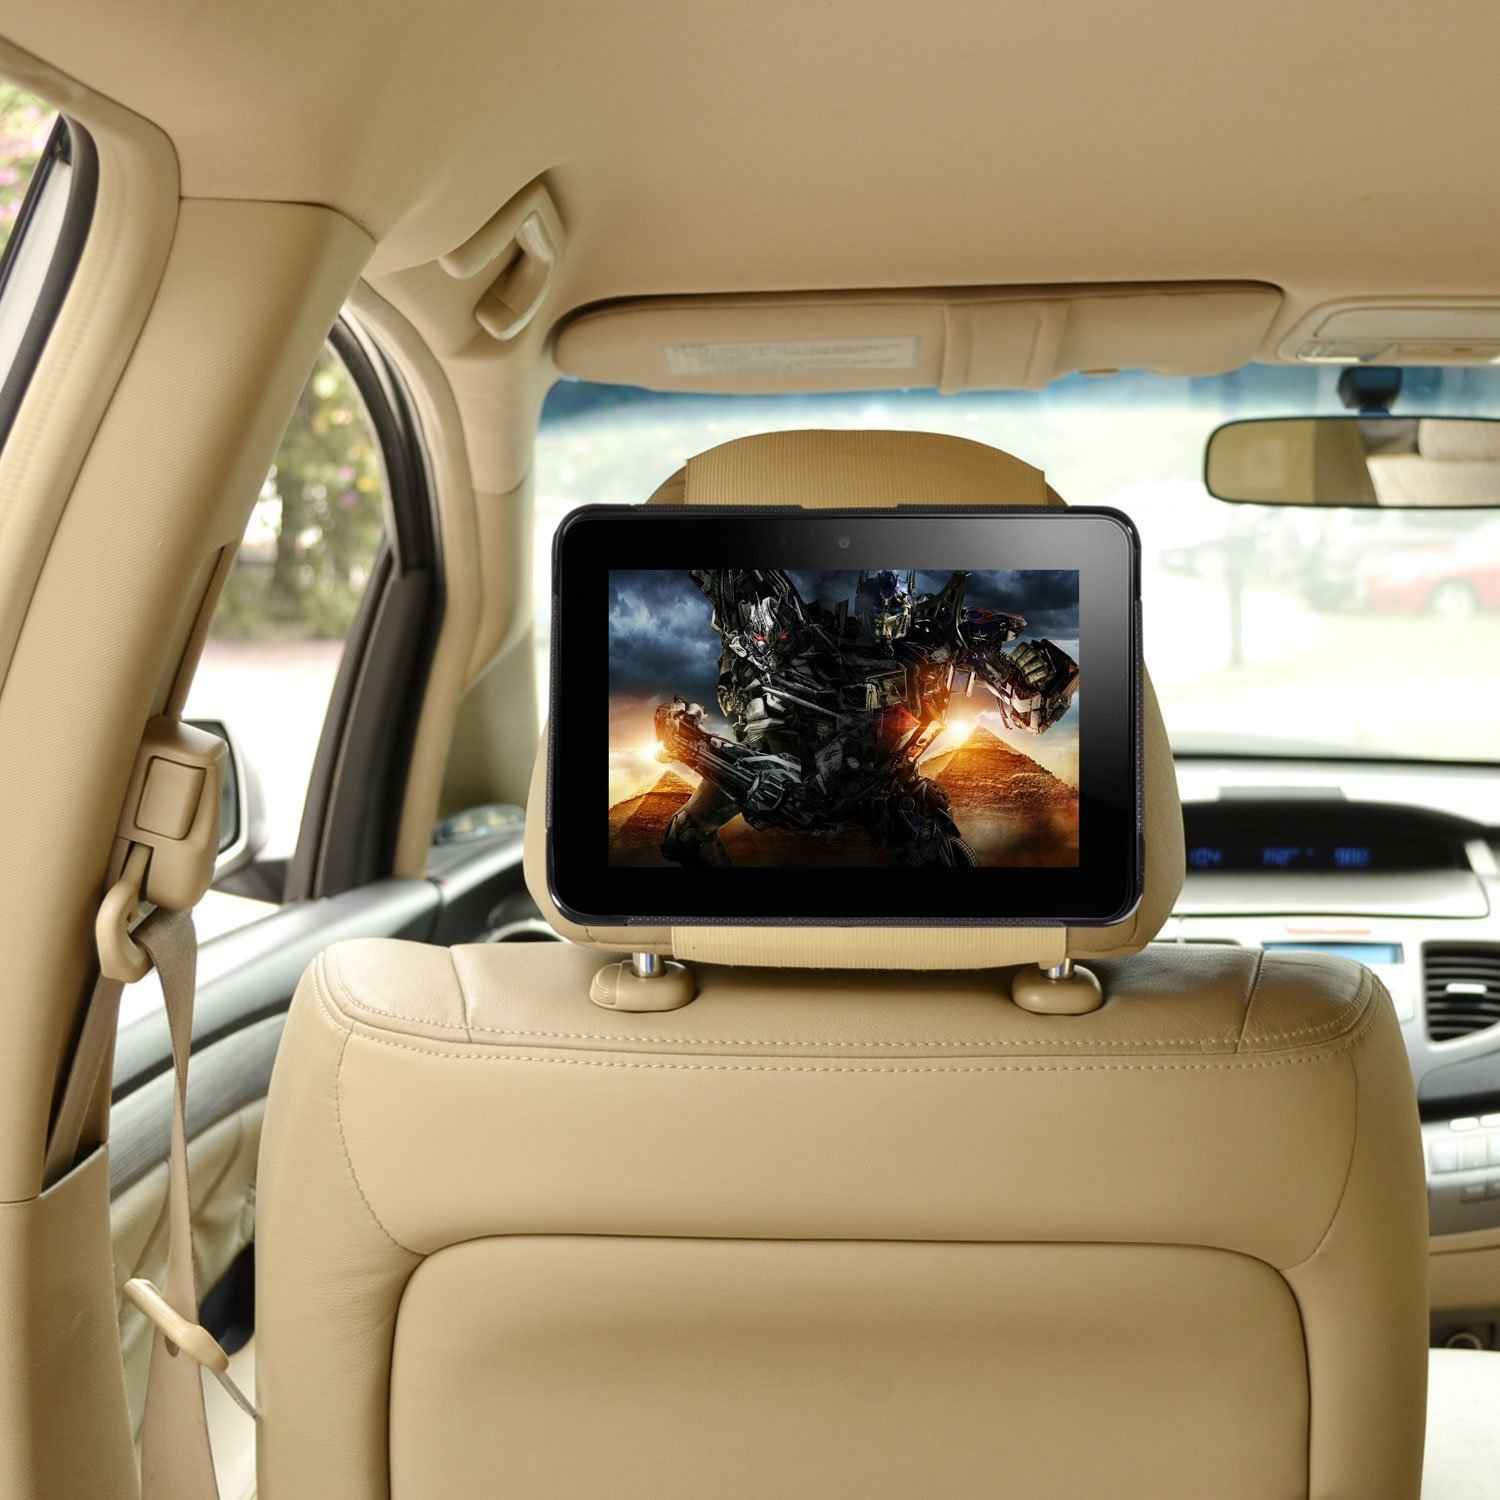 TFY Car Headrest Mount Holder for Kindle Fire HD 8 Fast-Attach Fast-Release Edition Black 2015 Version